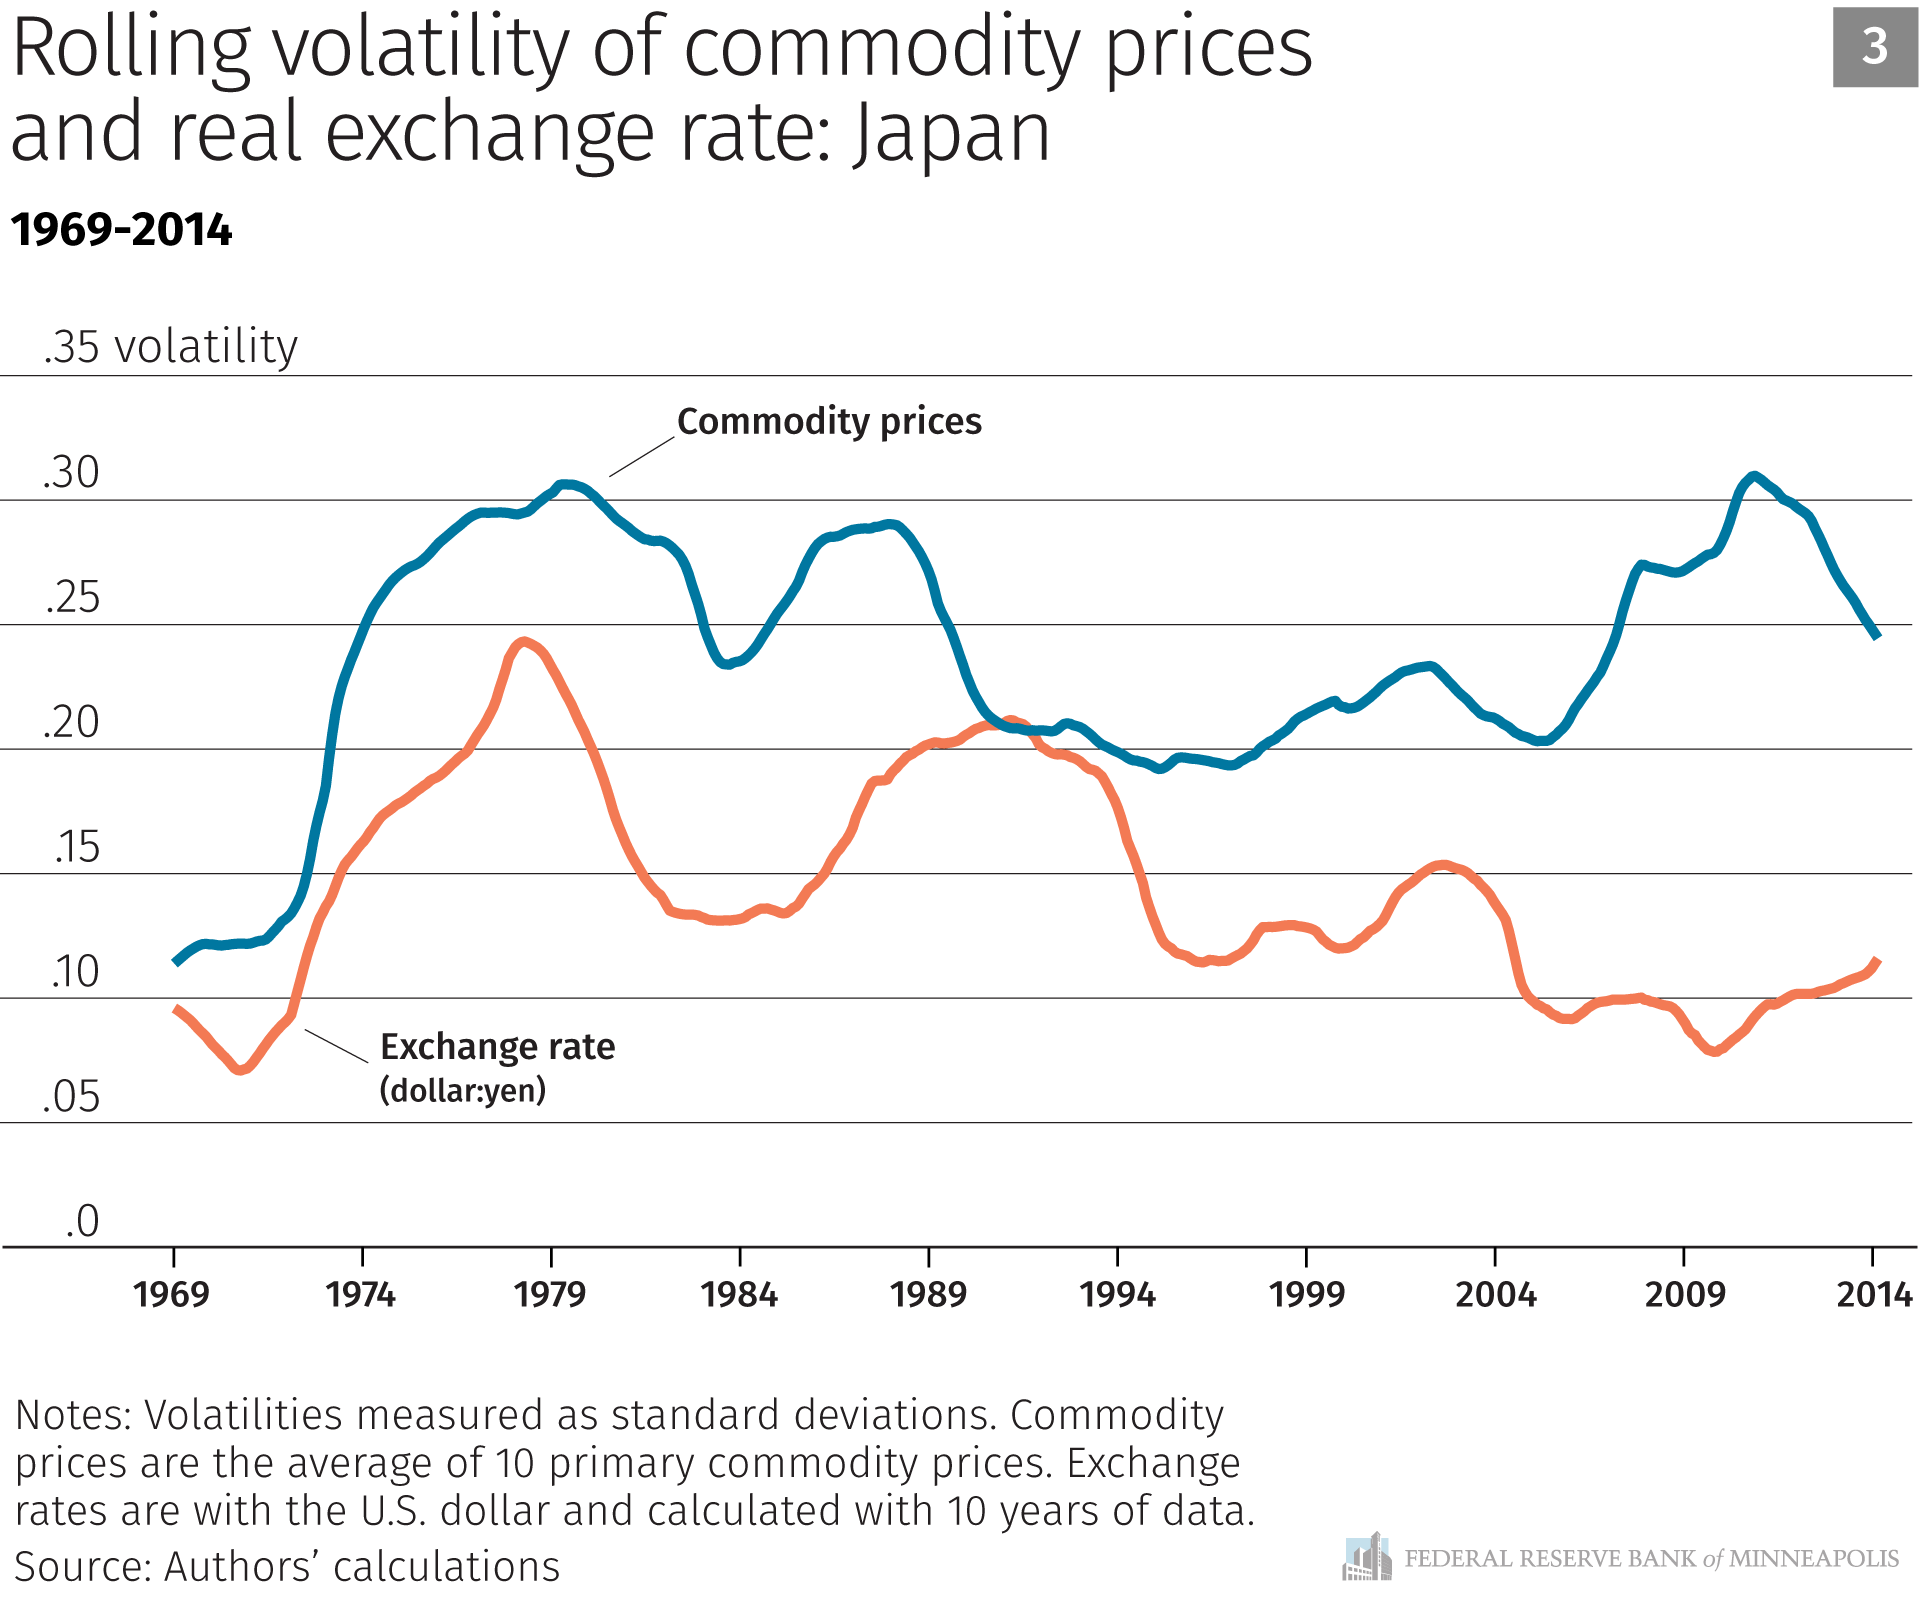 Rolling volatility of commodity prices and real exchange rate: Japan